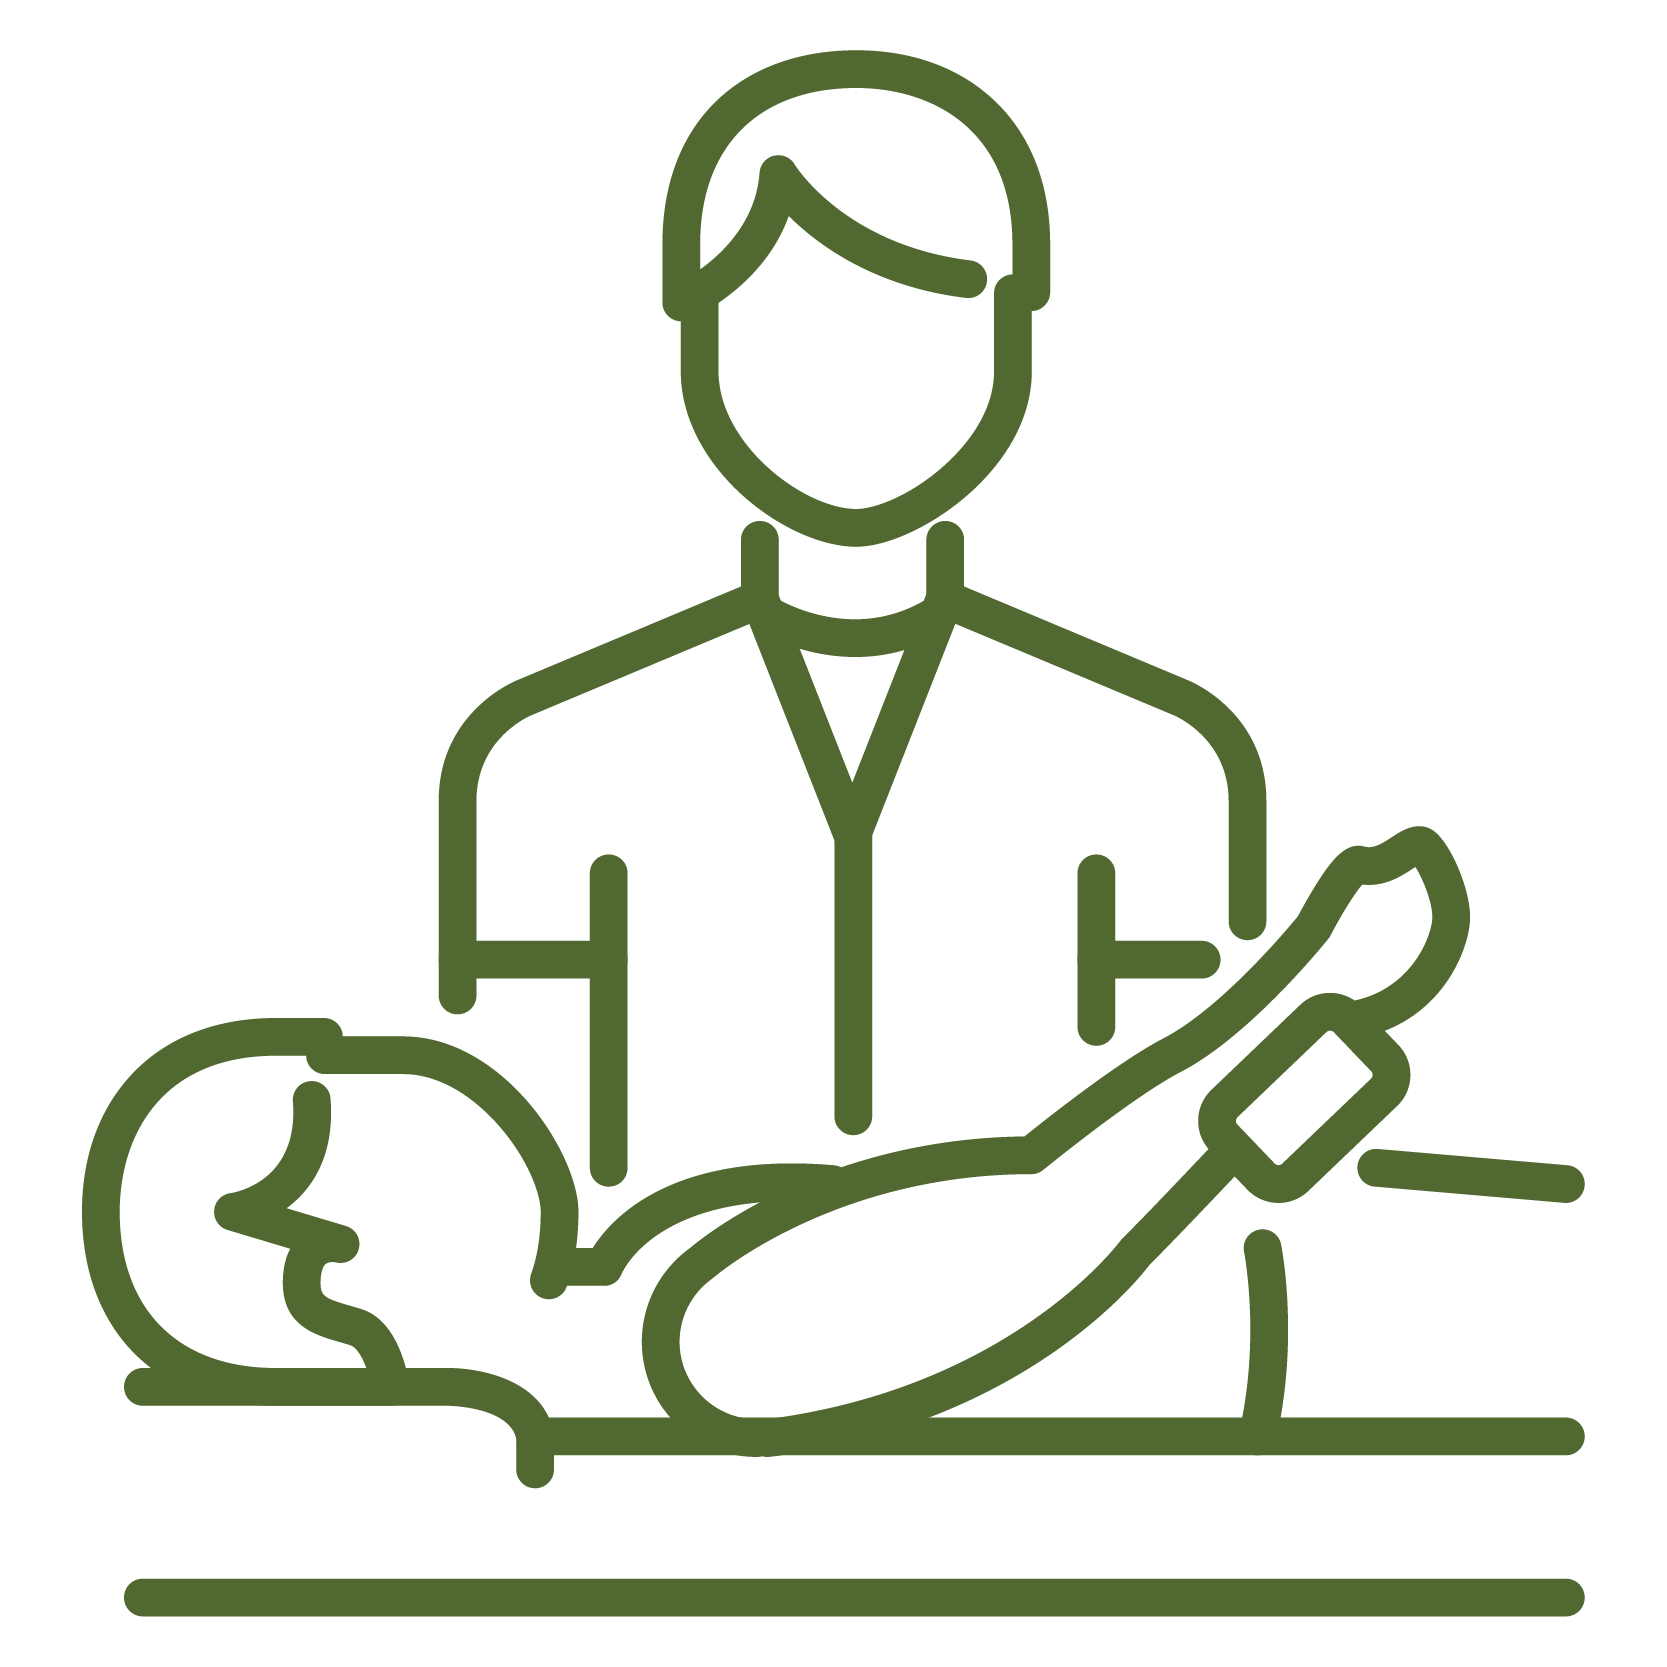 Kinesitherapie icon